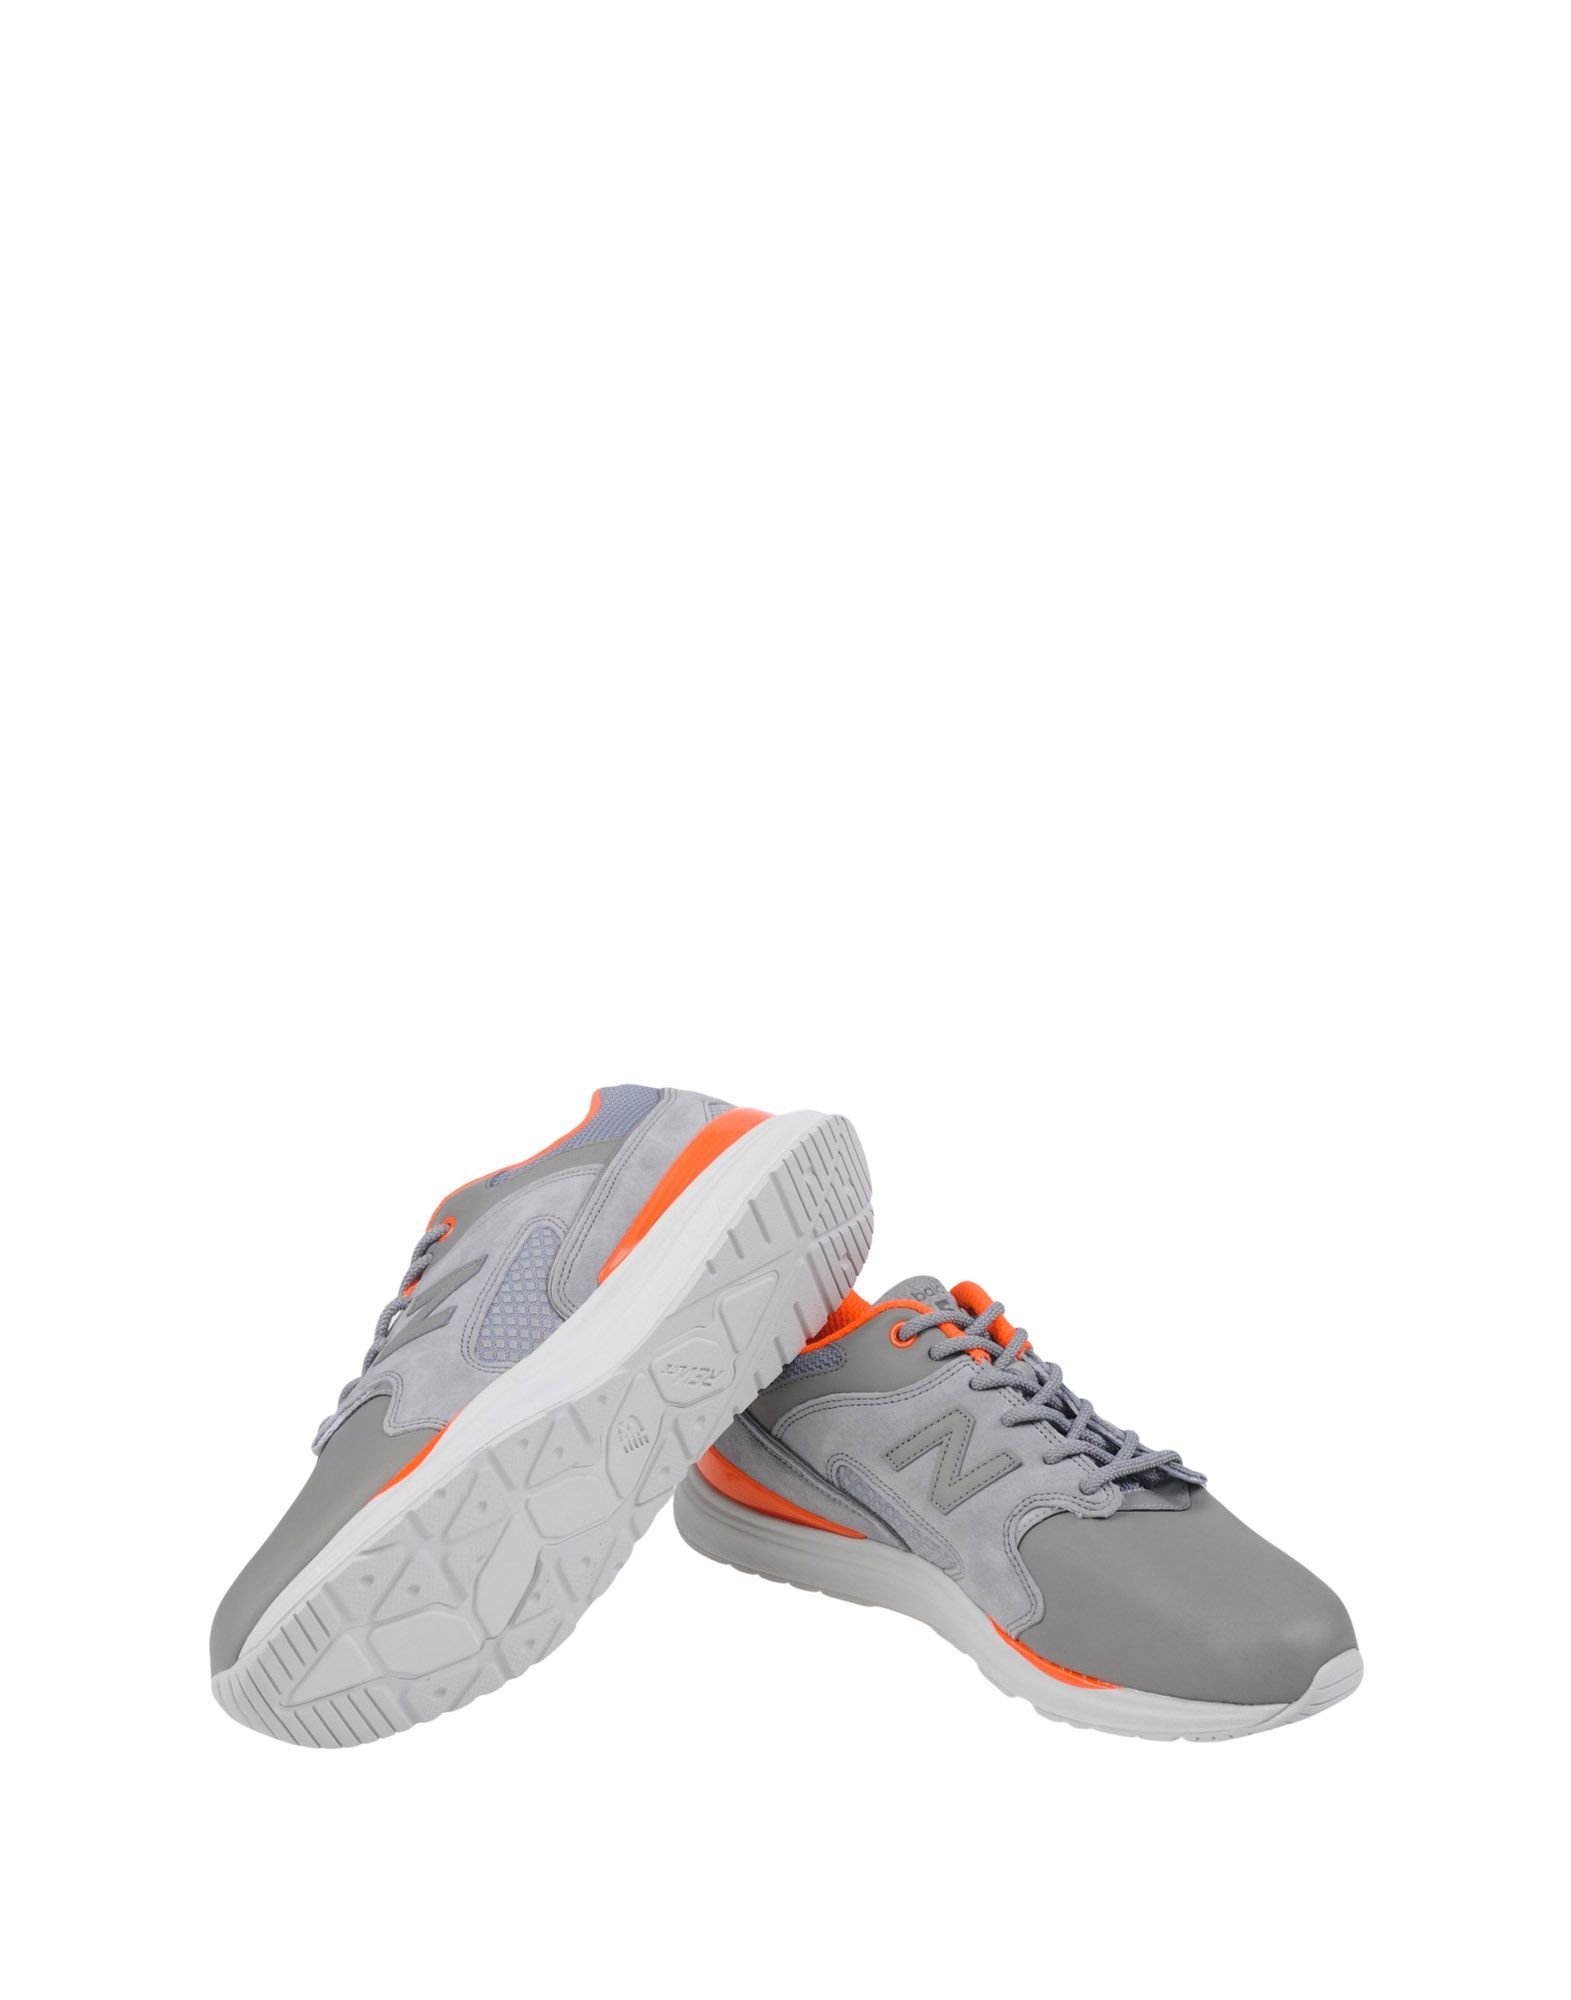 Sneakers New Balance 1550 High Viz Pack - Homme - Sneakers New Balance sur